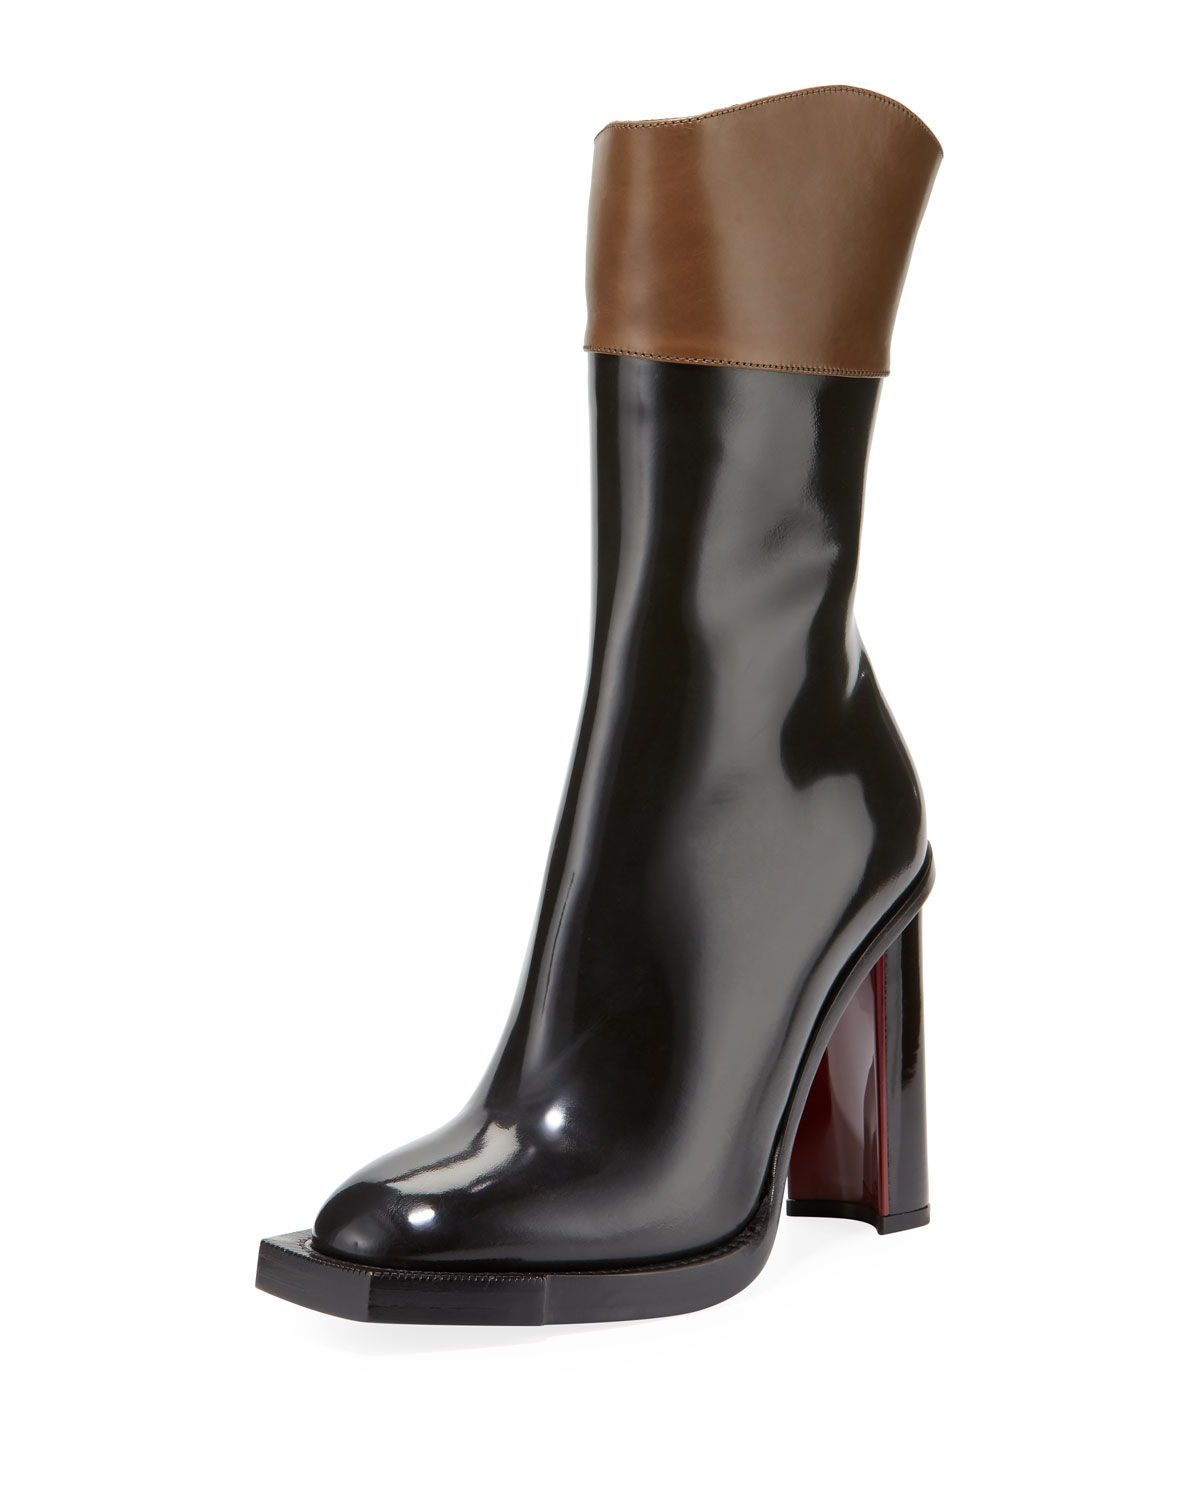 a43b7fd7ee53 Alexander McQueen Two-Tone Leather Ankle Boots